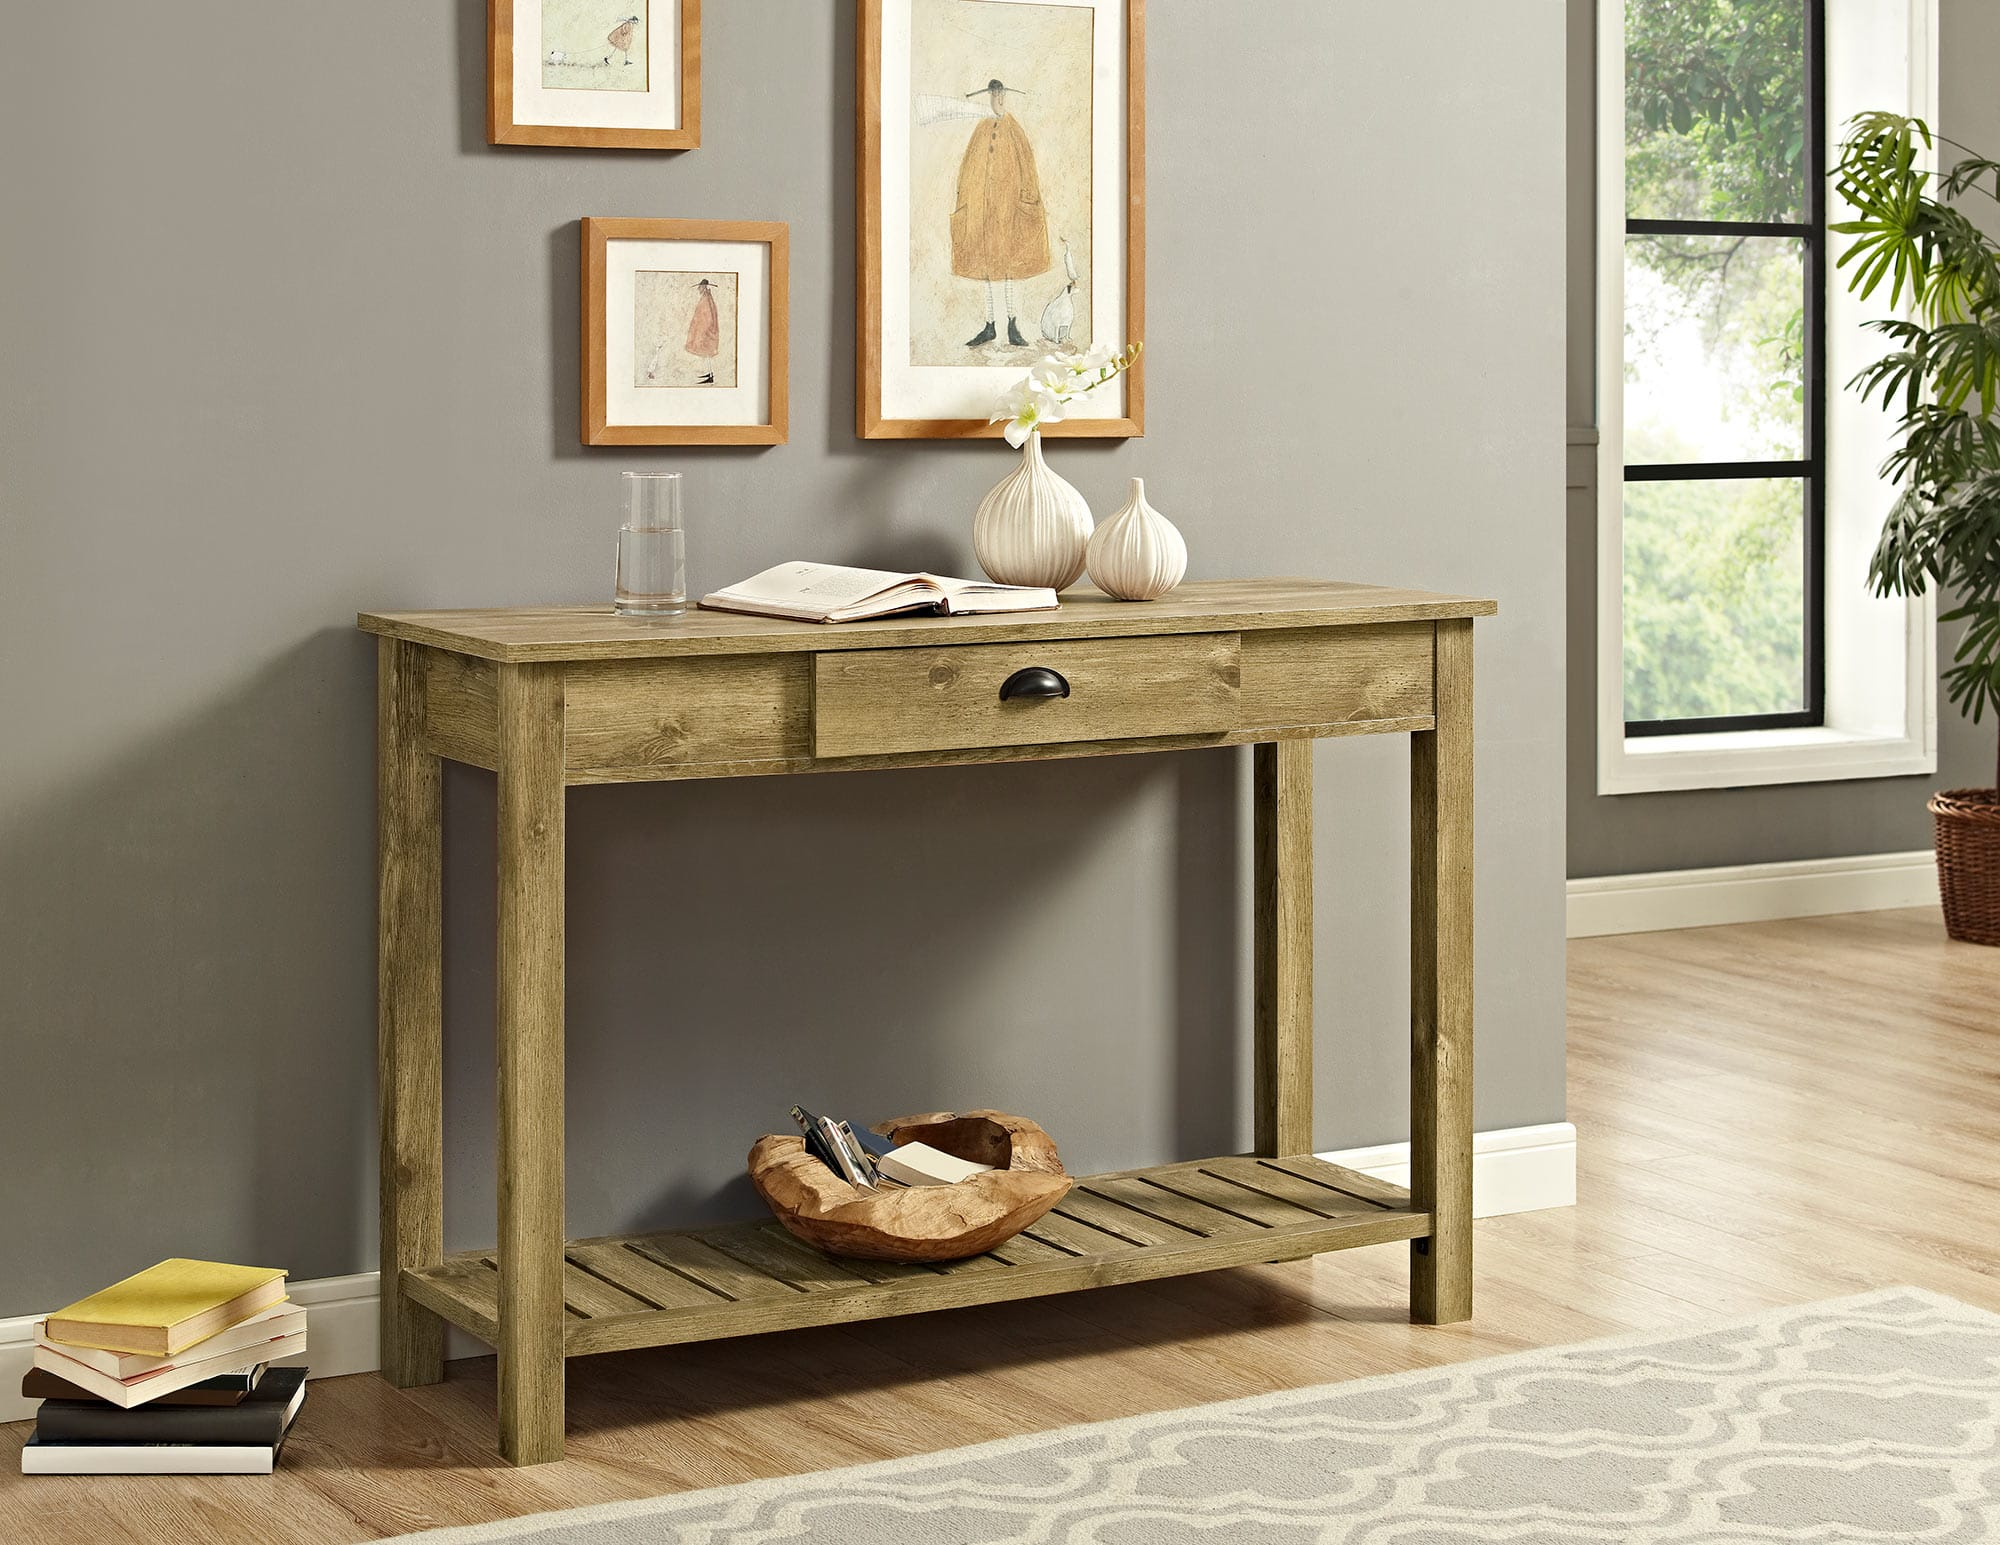 Astonishing 48 Inch Country Style Entry Console Table Barnwood By Walker Edison Gmtry Best Dining Table And Chair Ideas Images Gmtryco